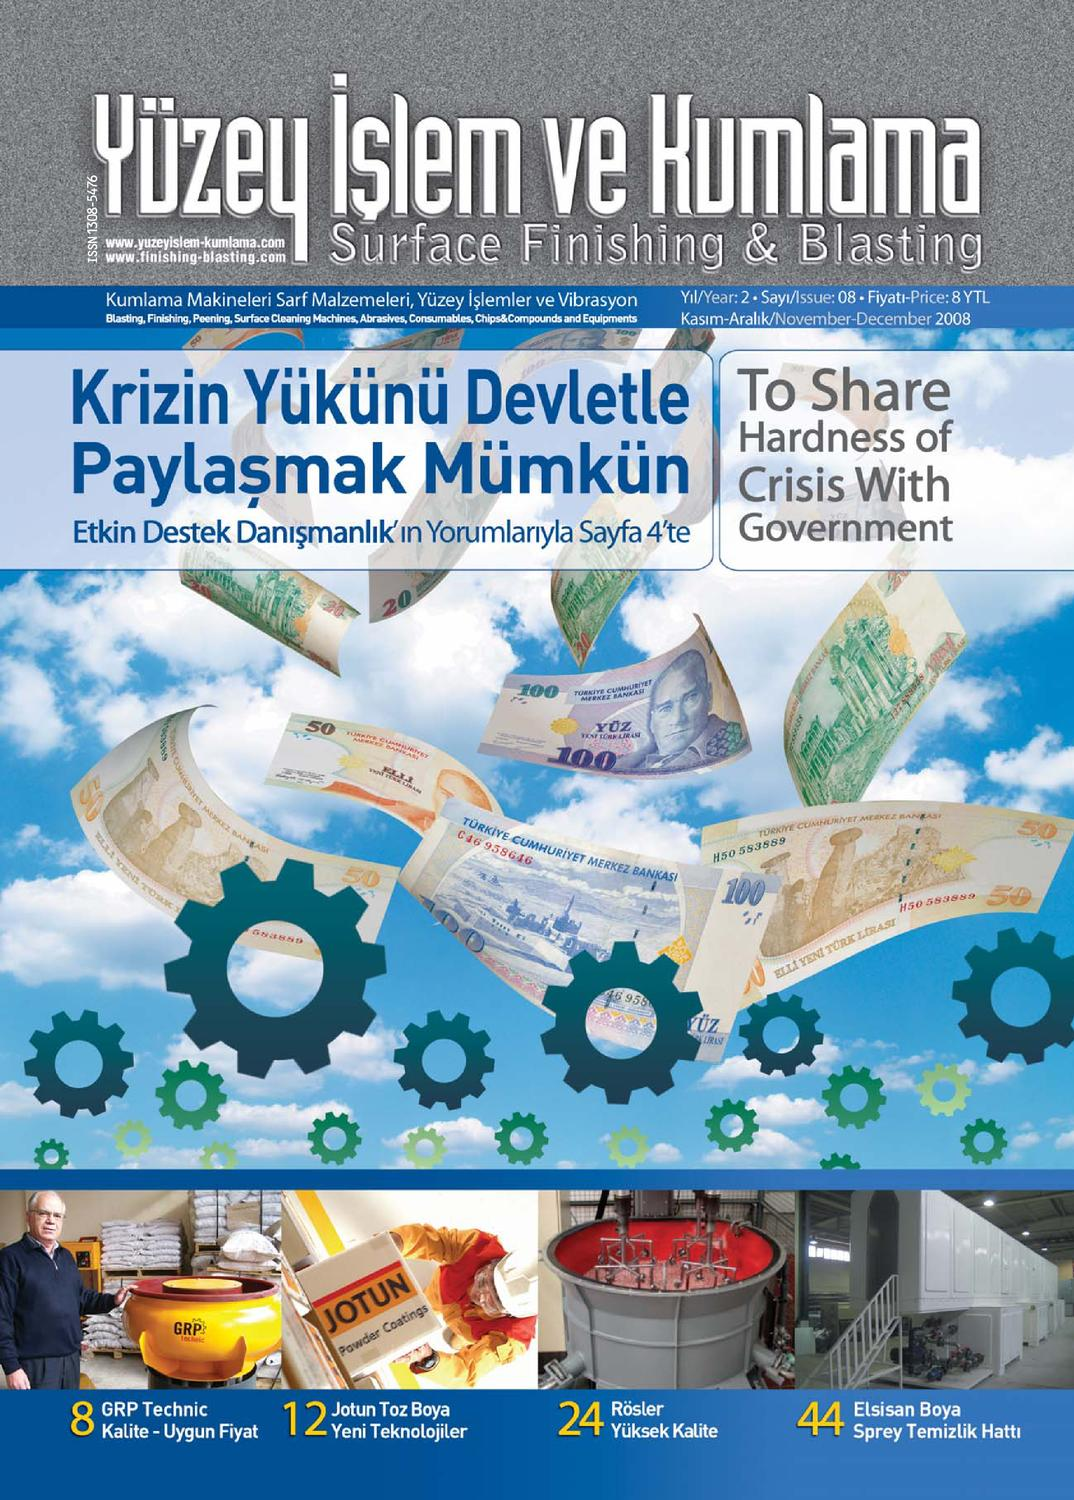 Yuzey Islem Ve Kumlama Dergisi Sayi8 By Surface Finishing Issuu